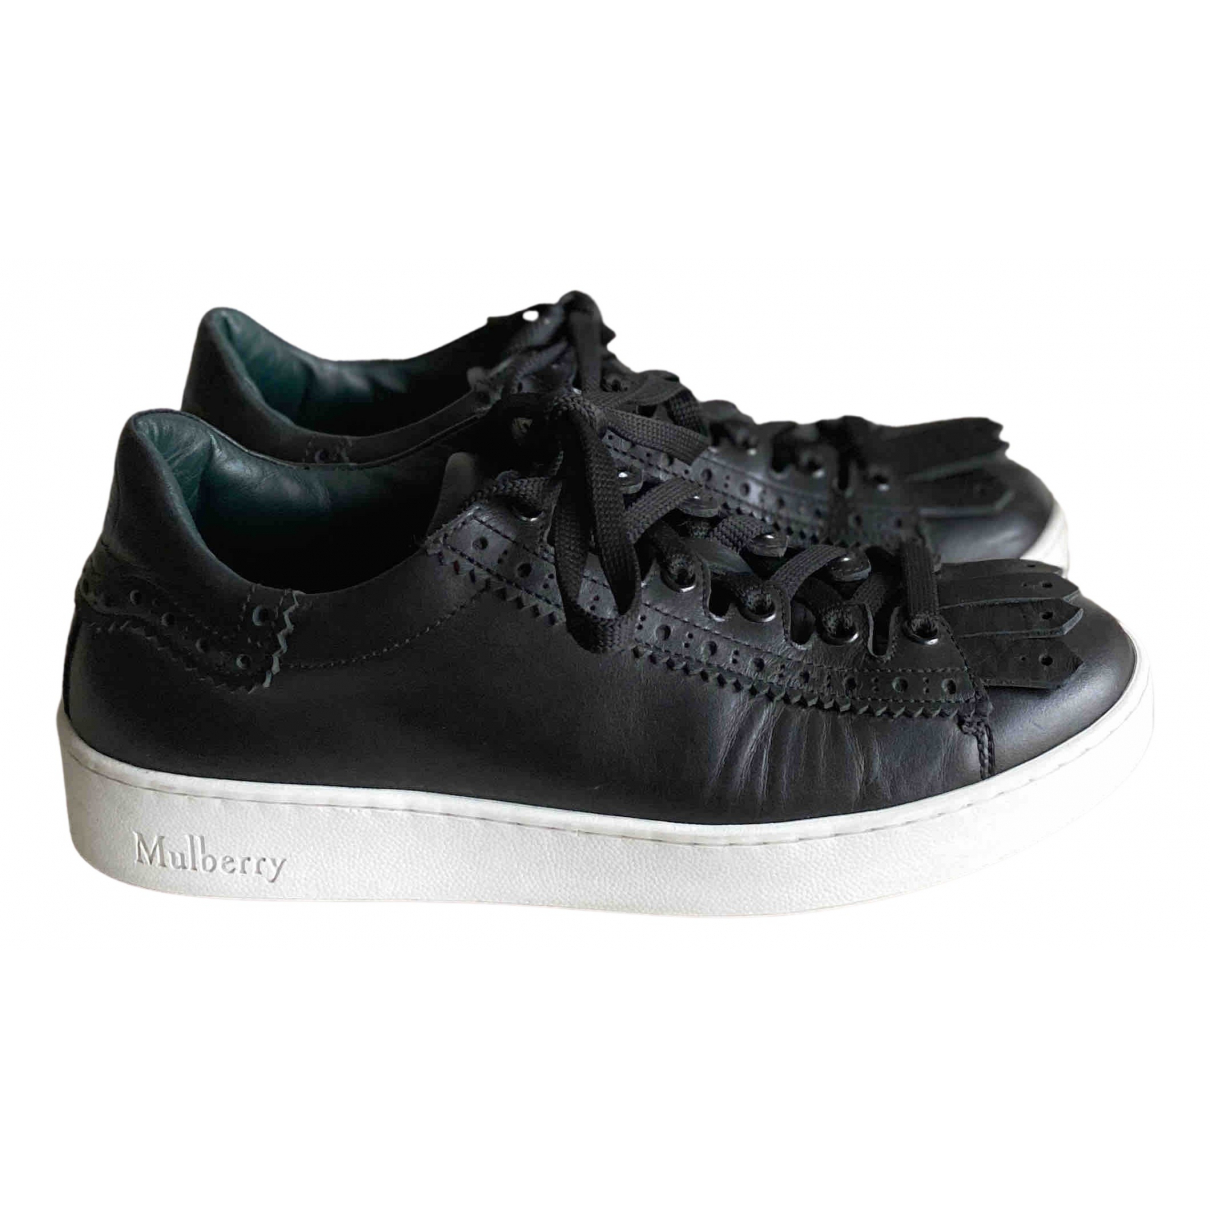 Mulberry \N Black Leather Trainers for Women 37 EU